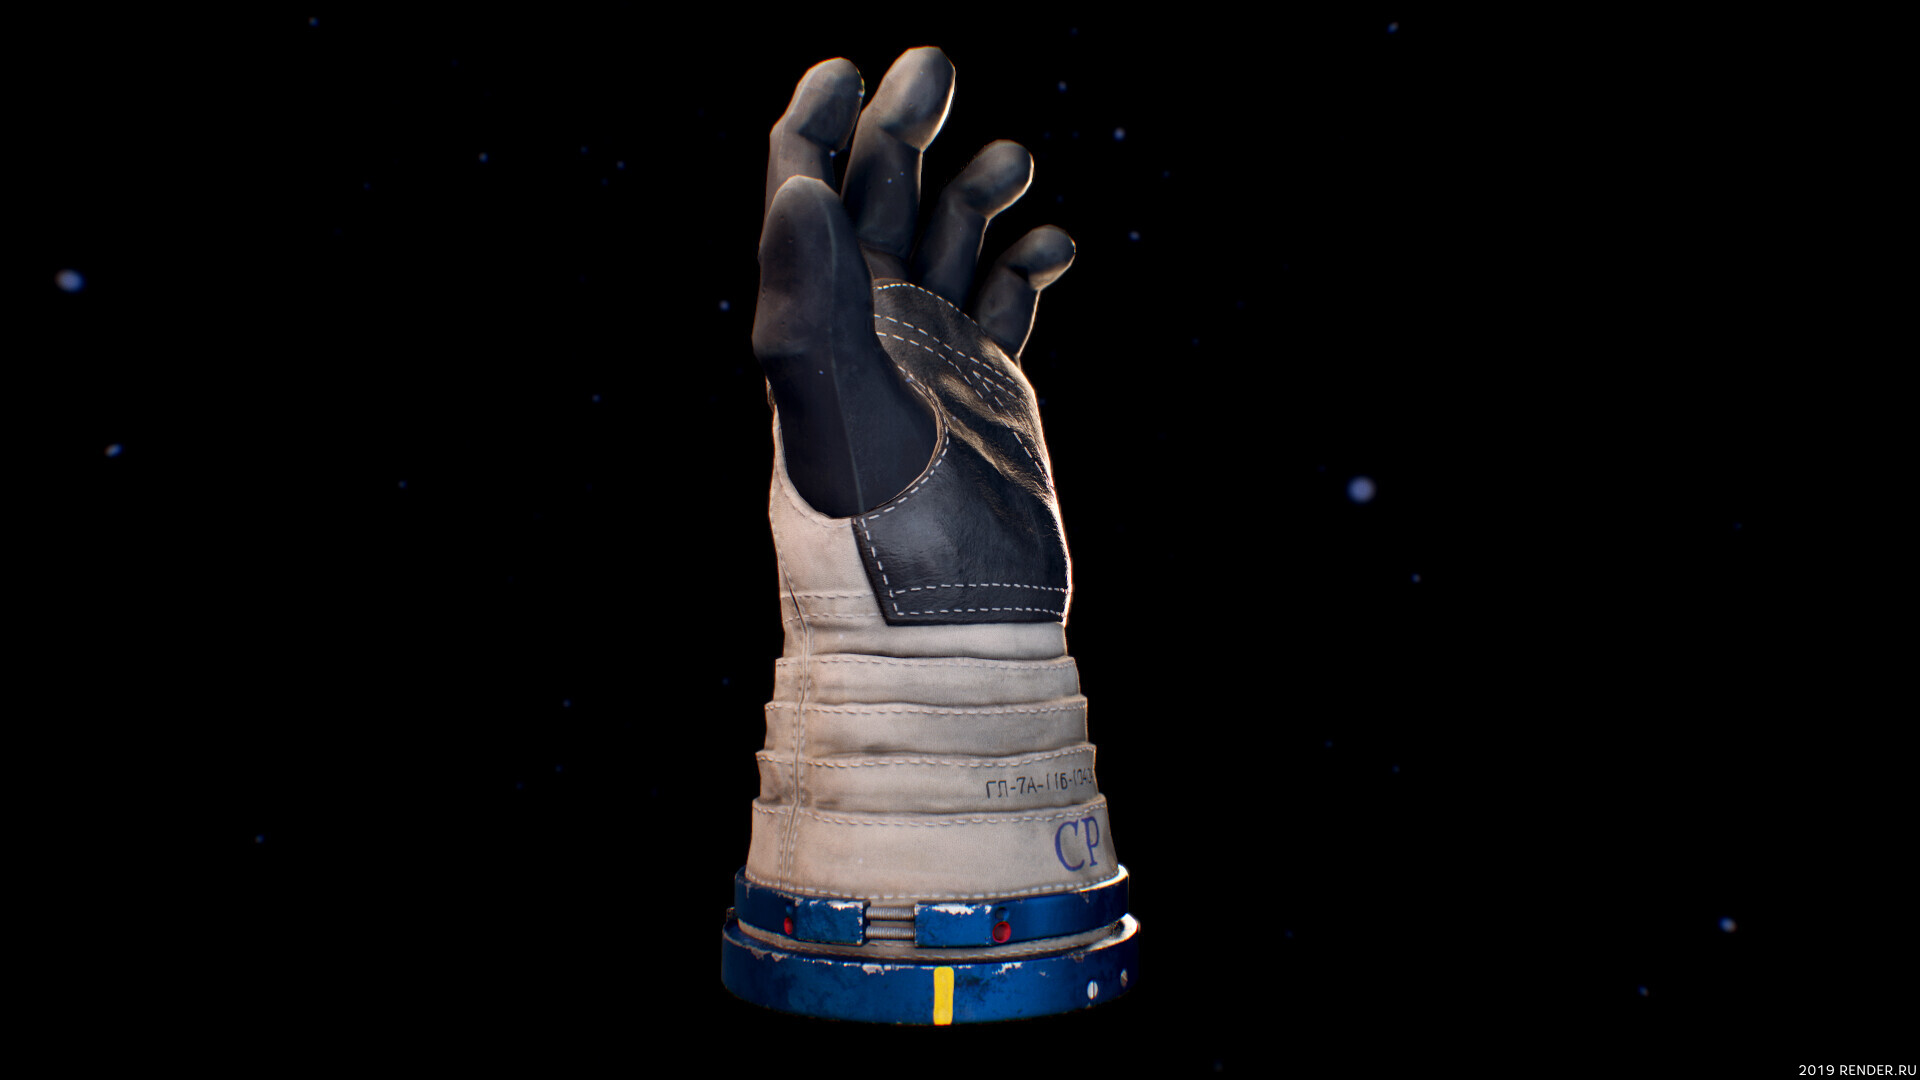 preview Astronaut's Glove